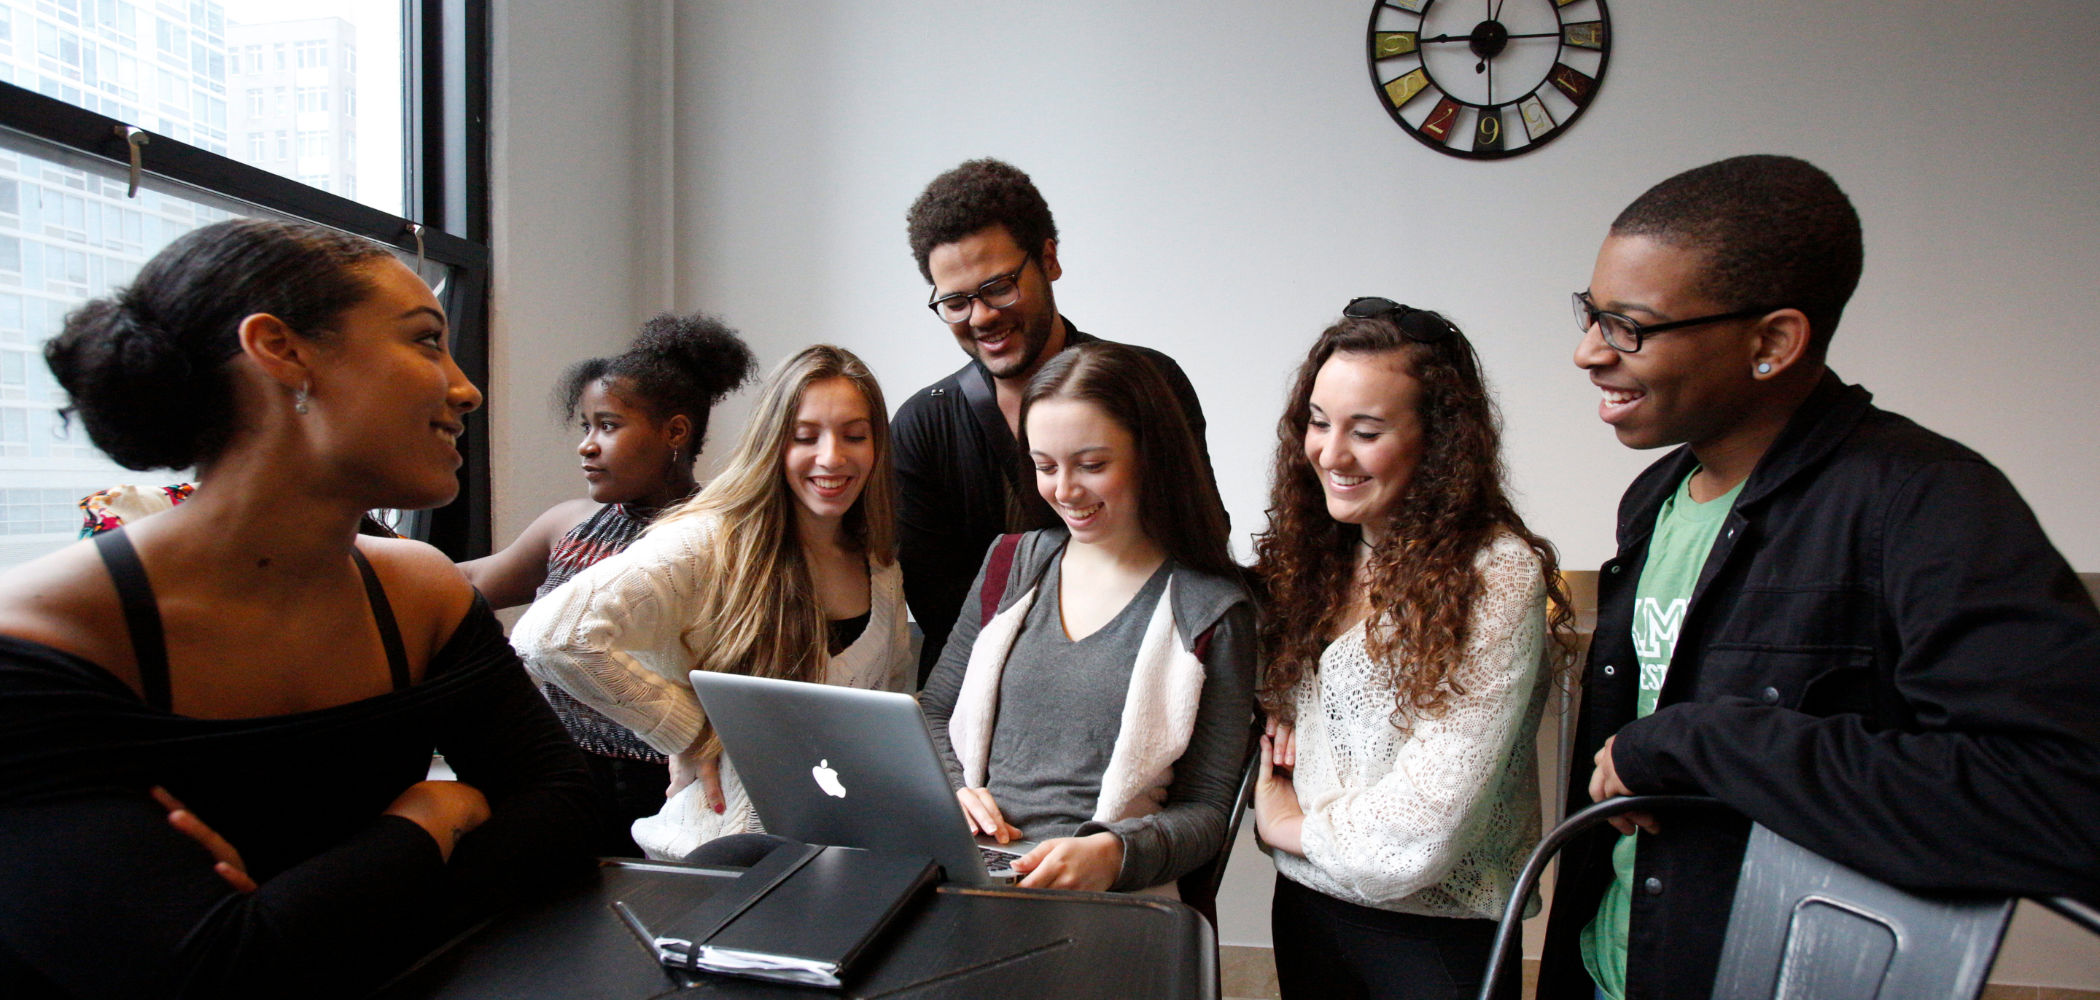 Students gathering around computer